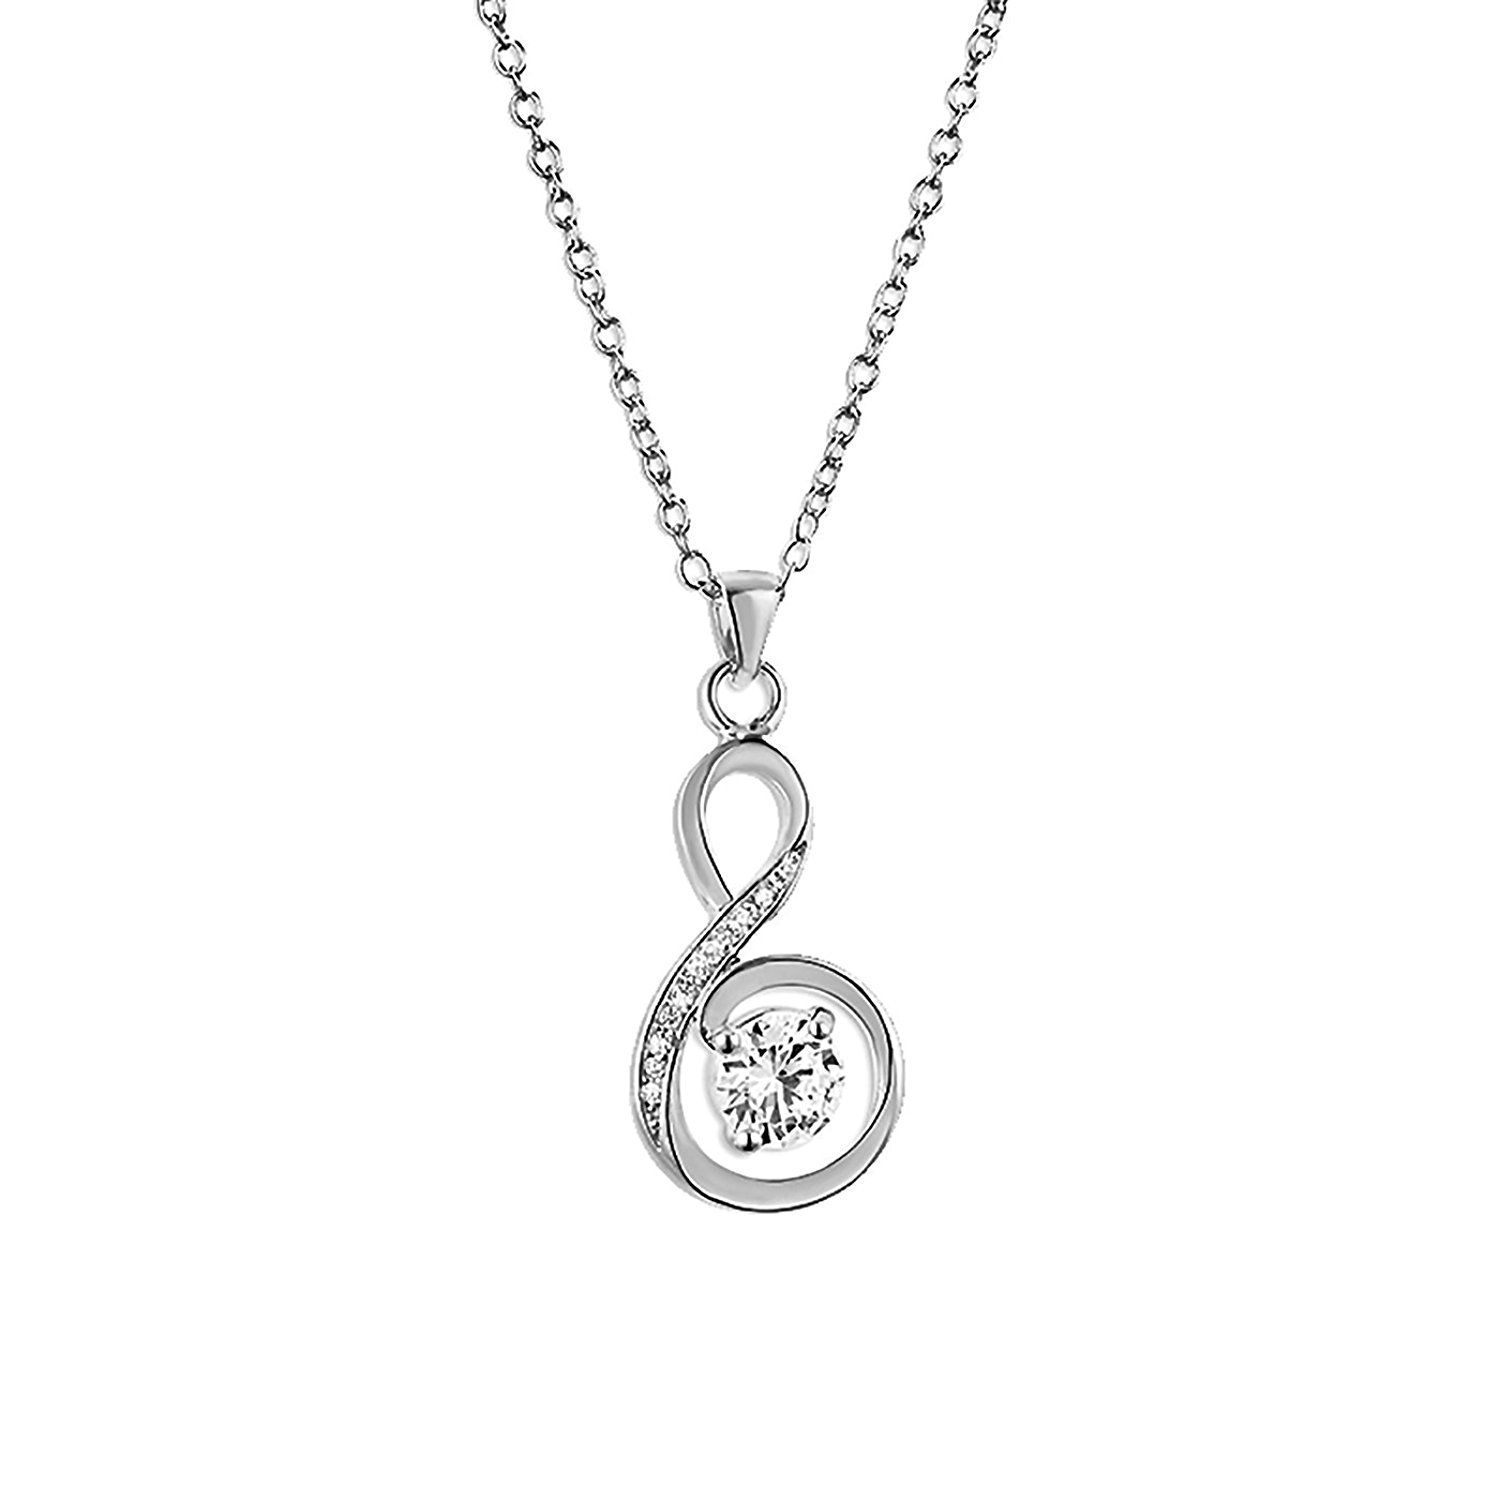 FASHIONVICTIME Pendant For Women By Silver Plated Jewel- Crystals From Swarovski YlVIxq